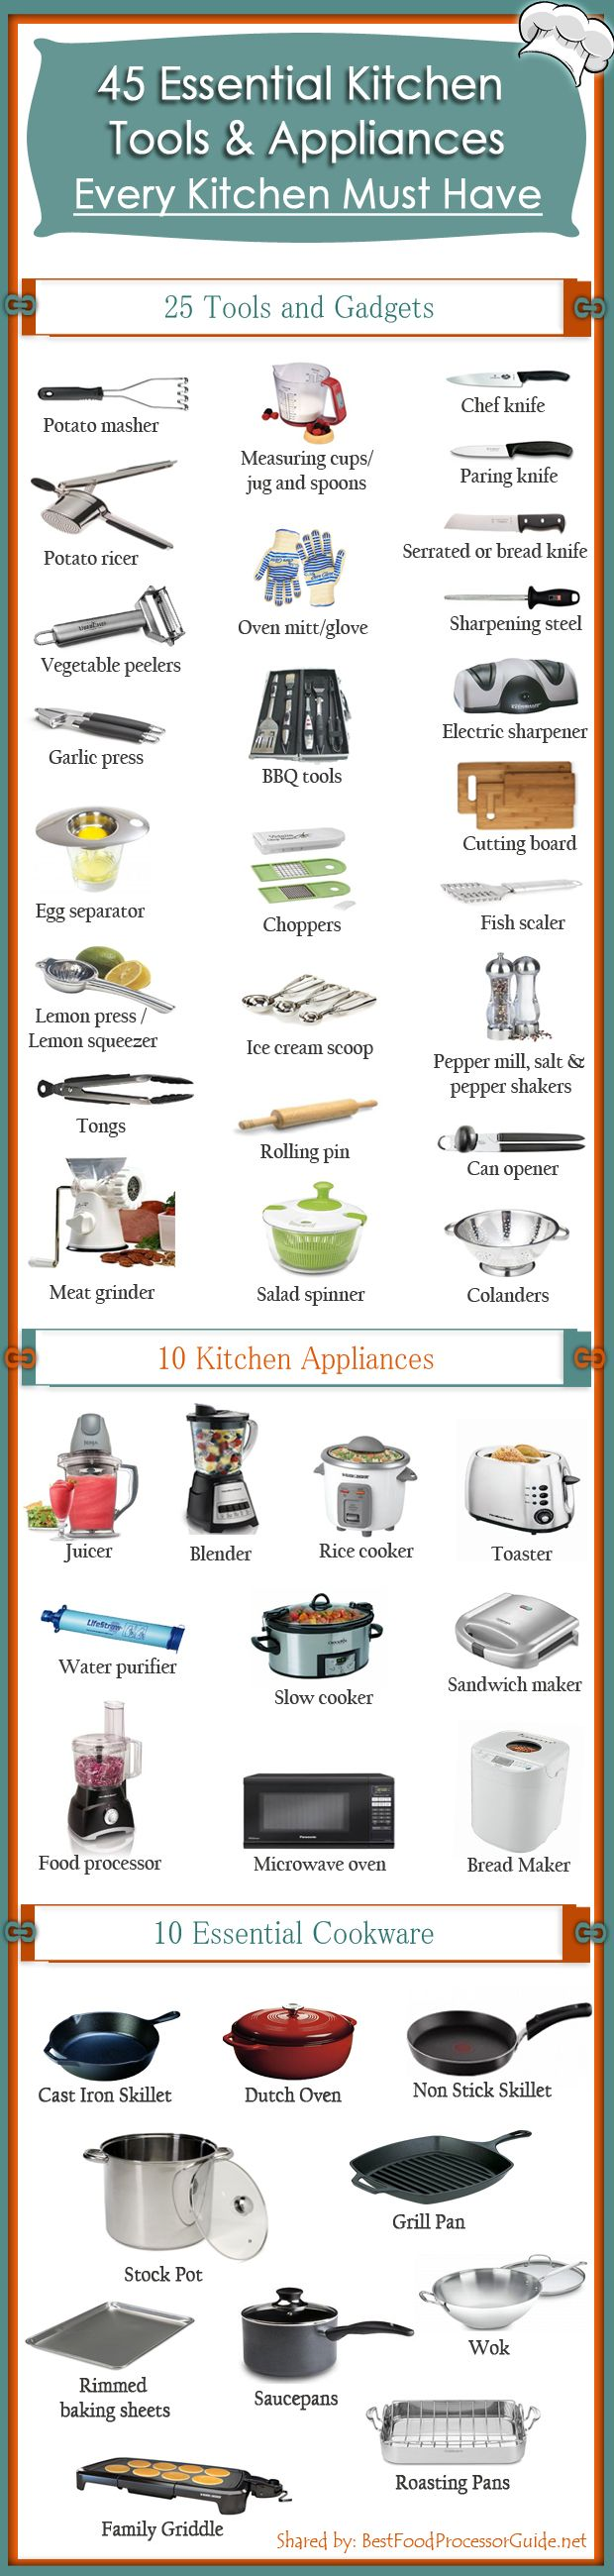 Kitchen Tools List 45 essential kitchen tools and appliances – every kitchen must